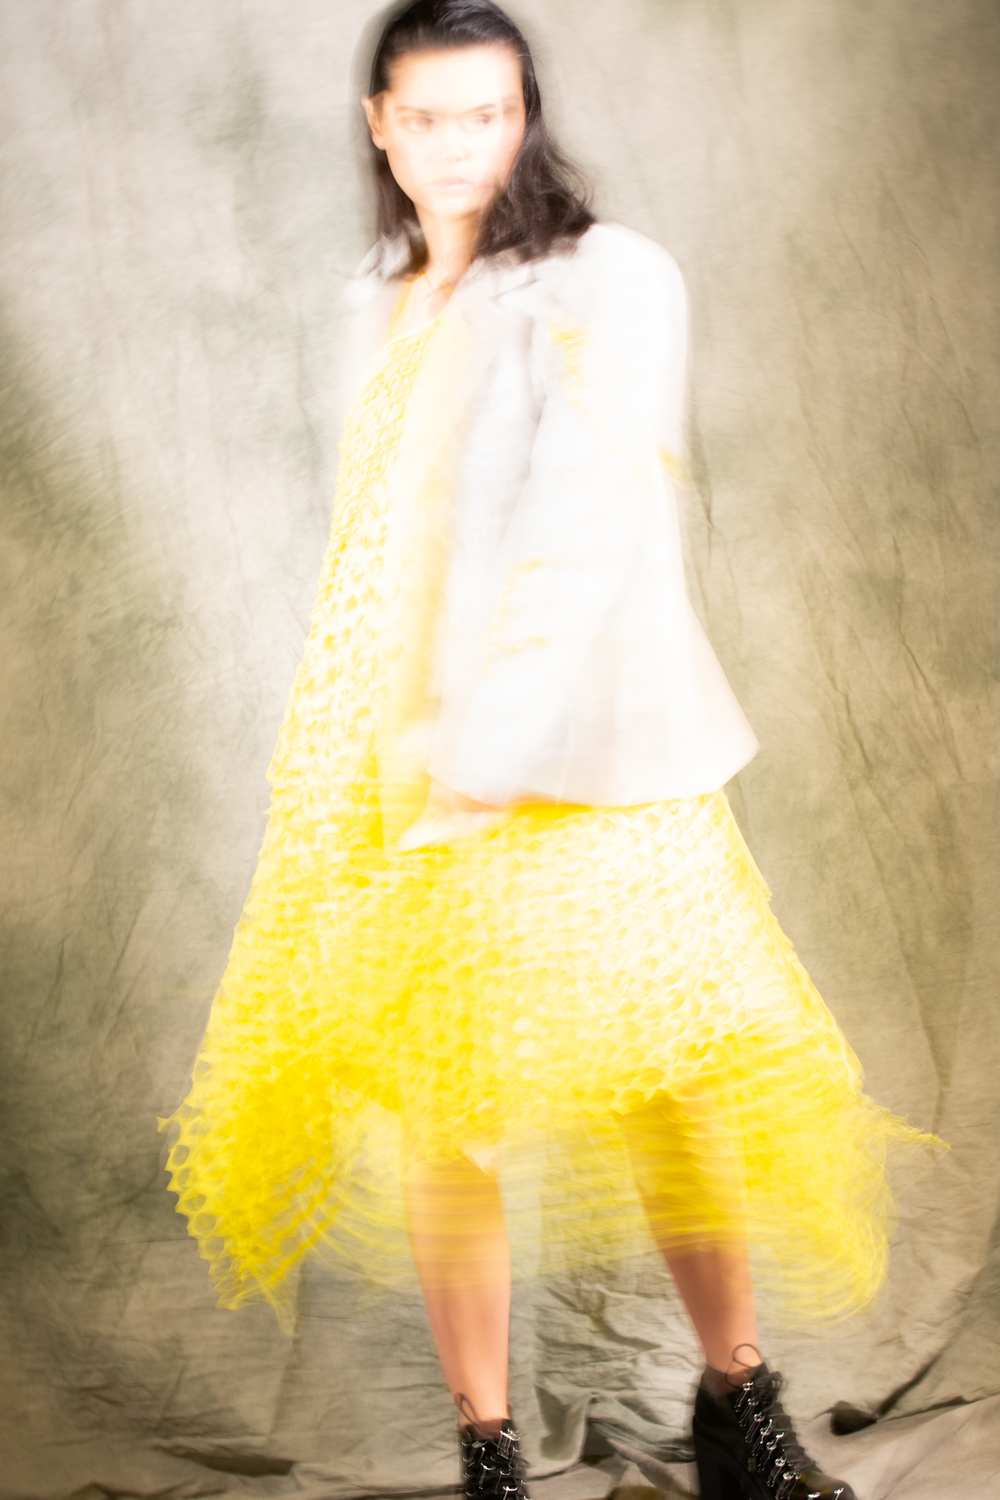 Yellow dress with embroidered jacket in movement - Fashion campaign by Ruud van Ooij